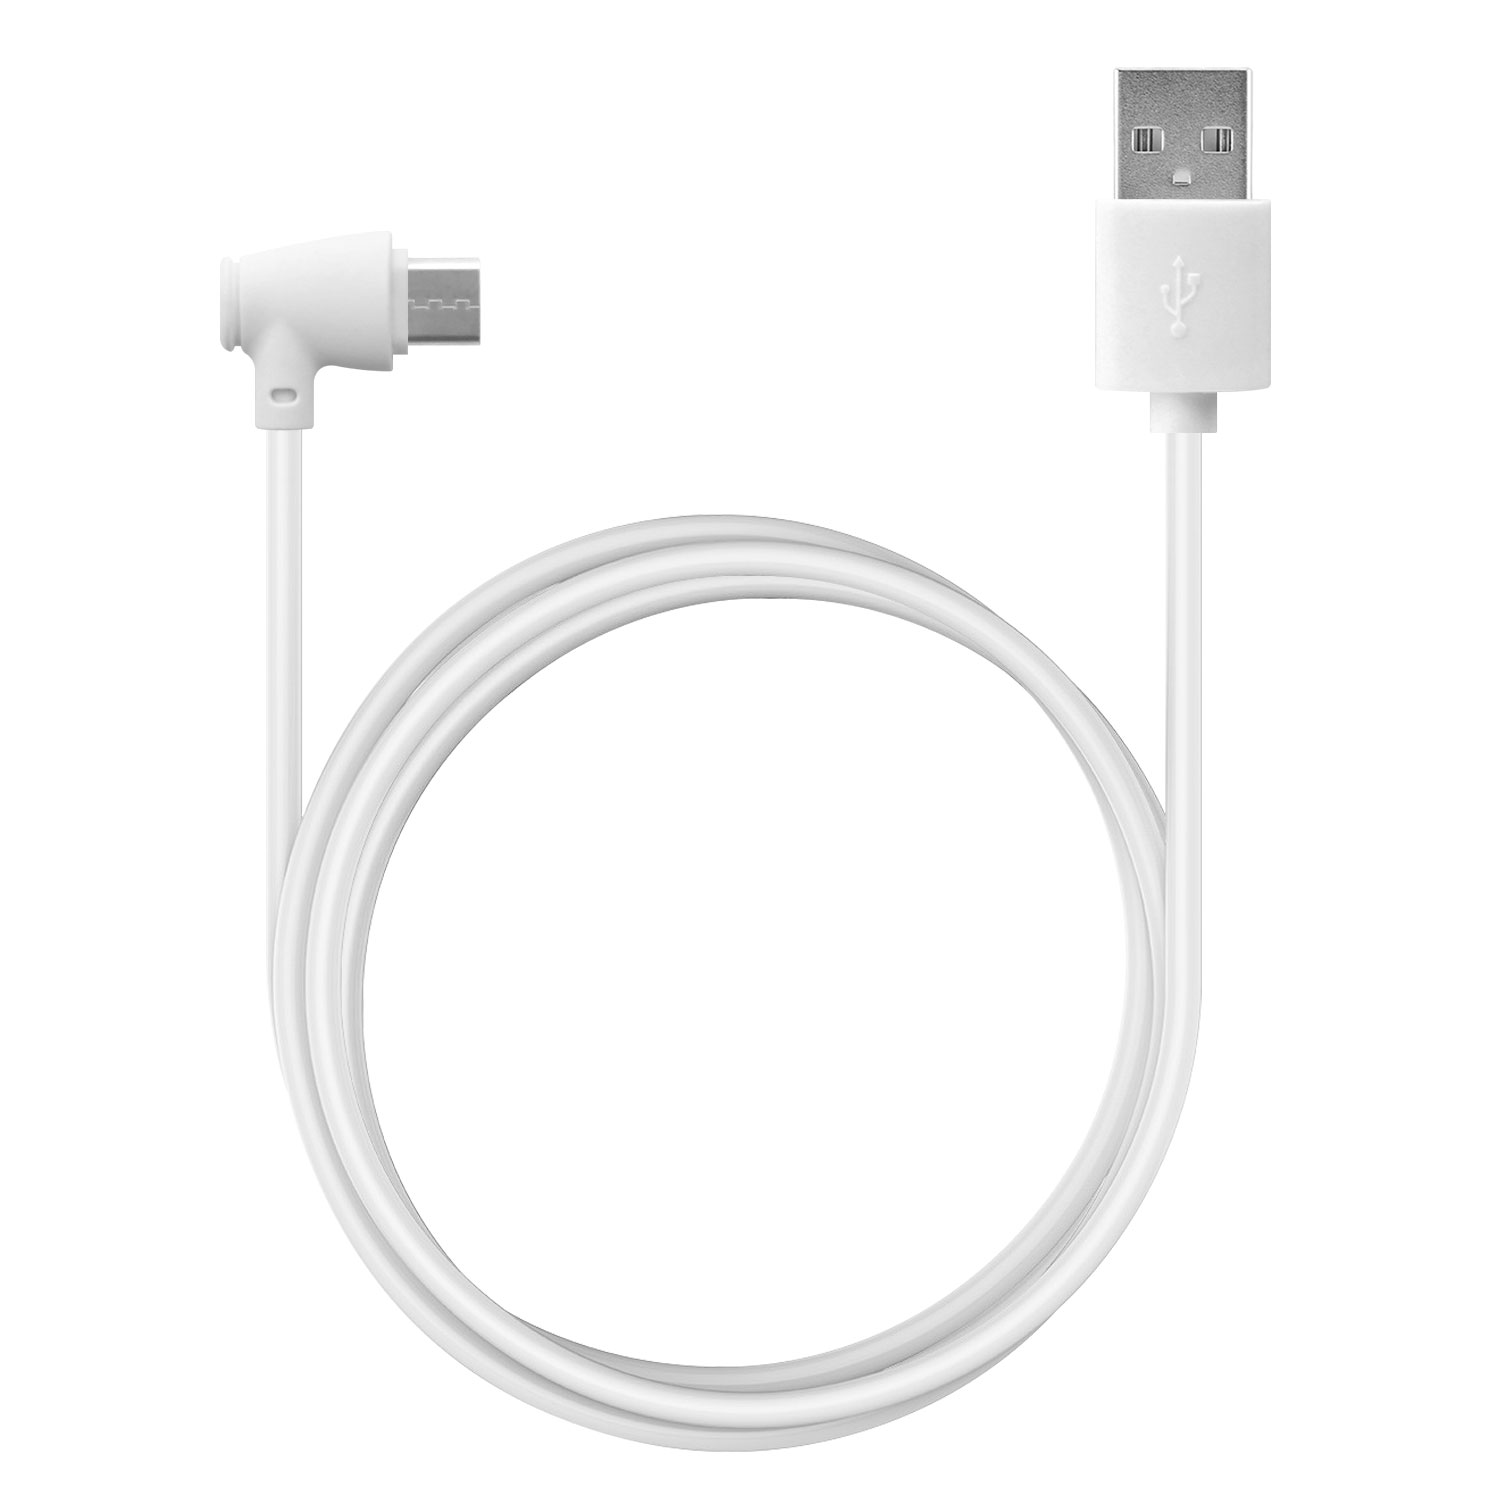 Sony Xperia X Compact USB Type-C To USB Type-A Data Charging Cable White 3.3ft Angled